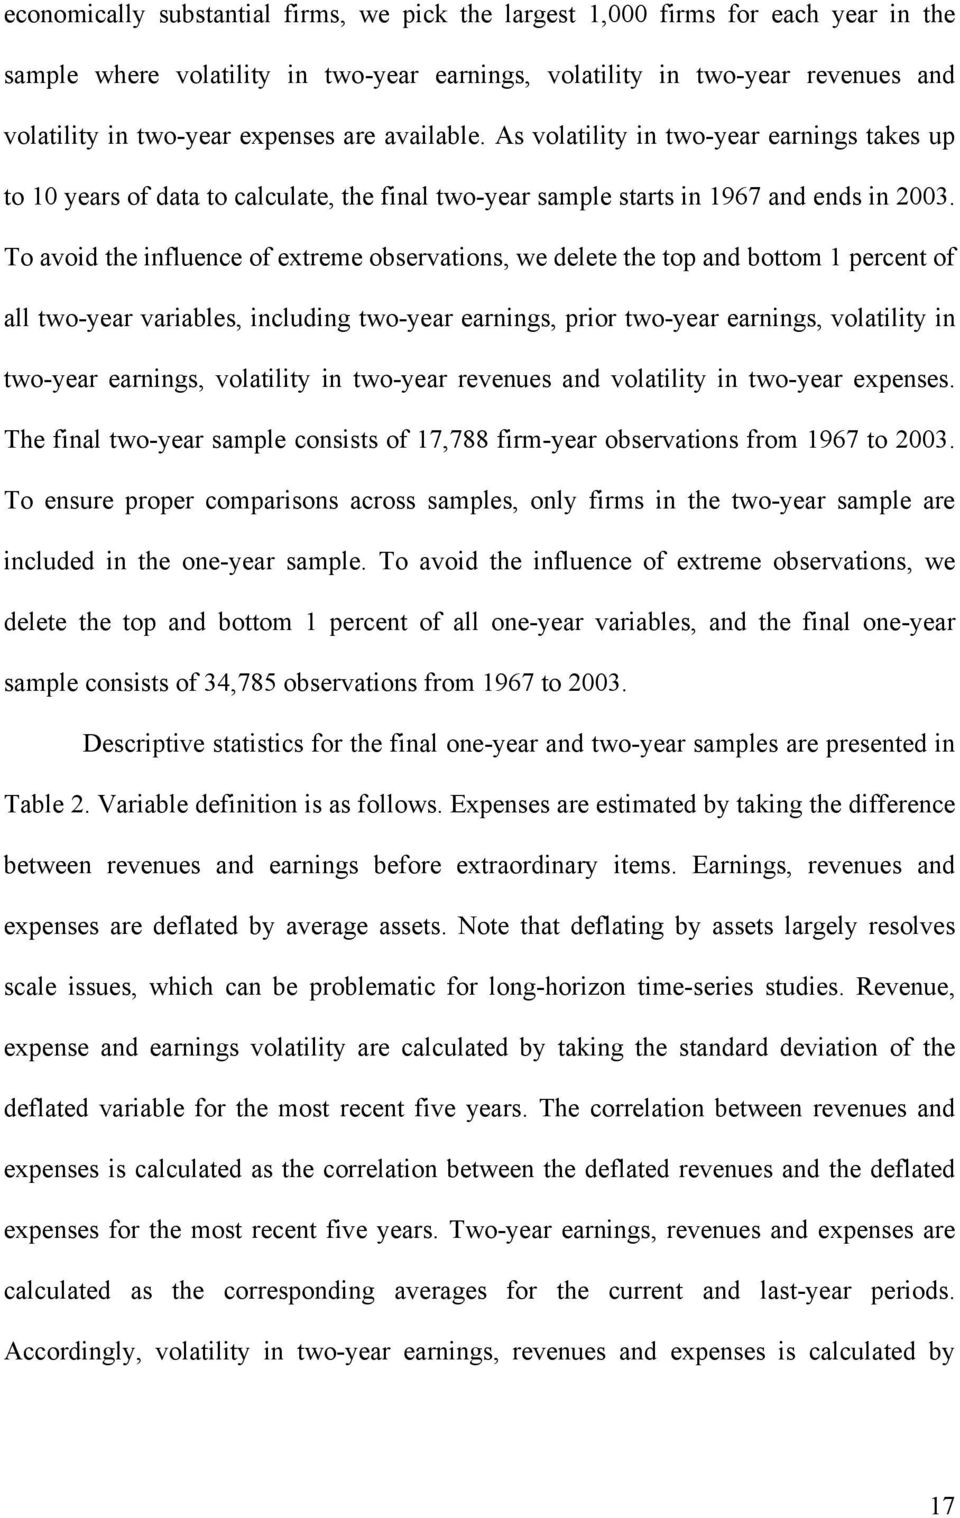 To avoid the influence of extreme observations, we delete the top and bottom 1 percent of all two-year variables, including two-year earnings, prior two-year earnings, volatility in two-year